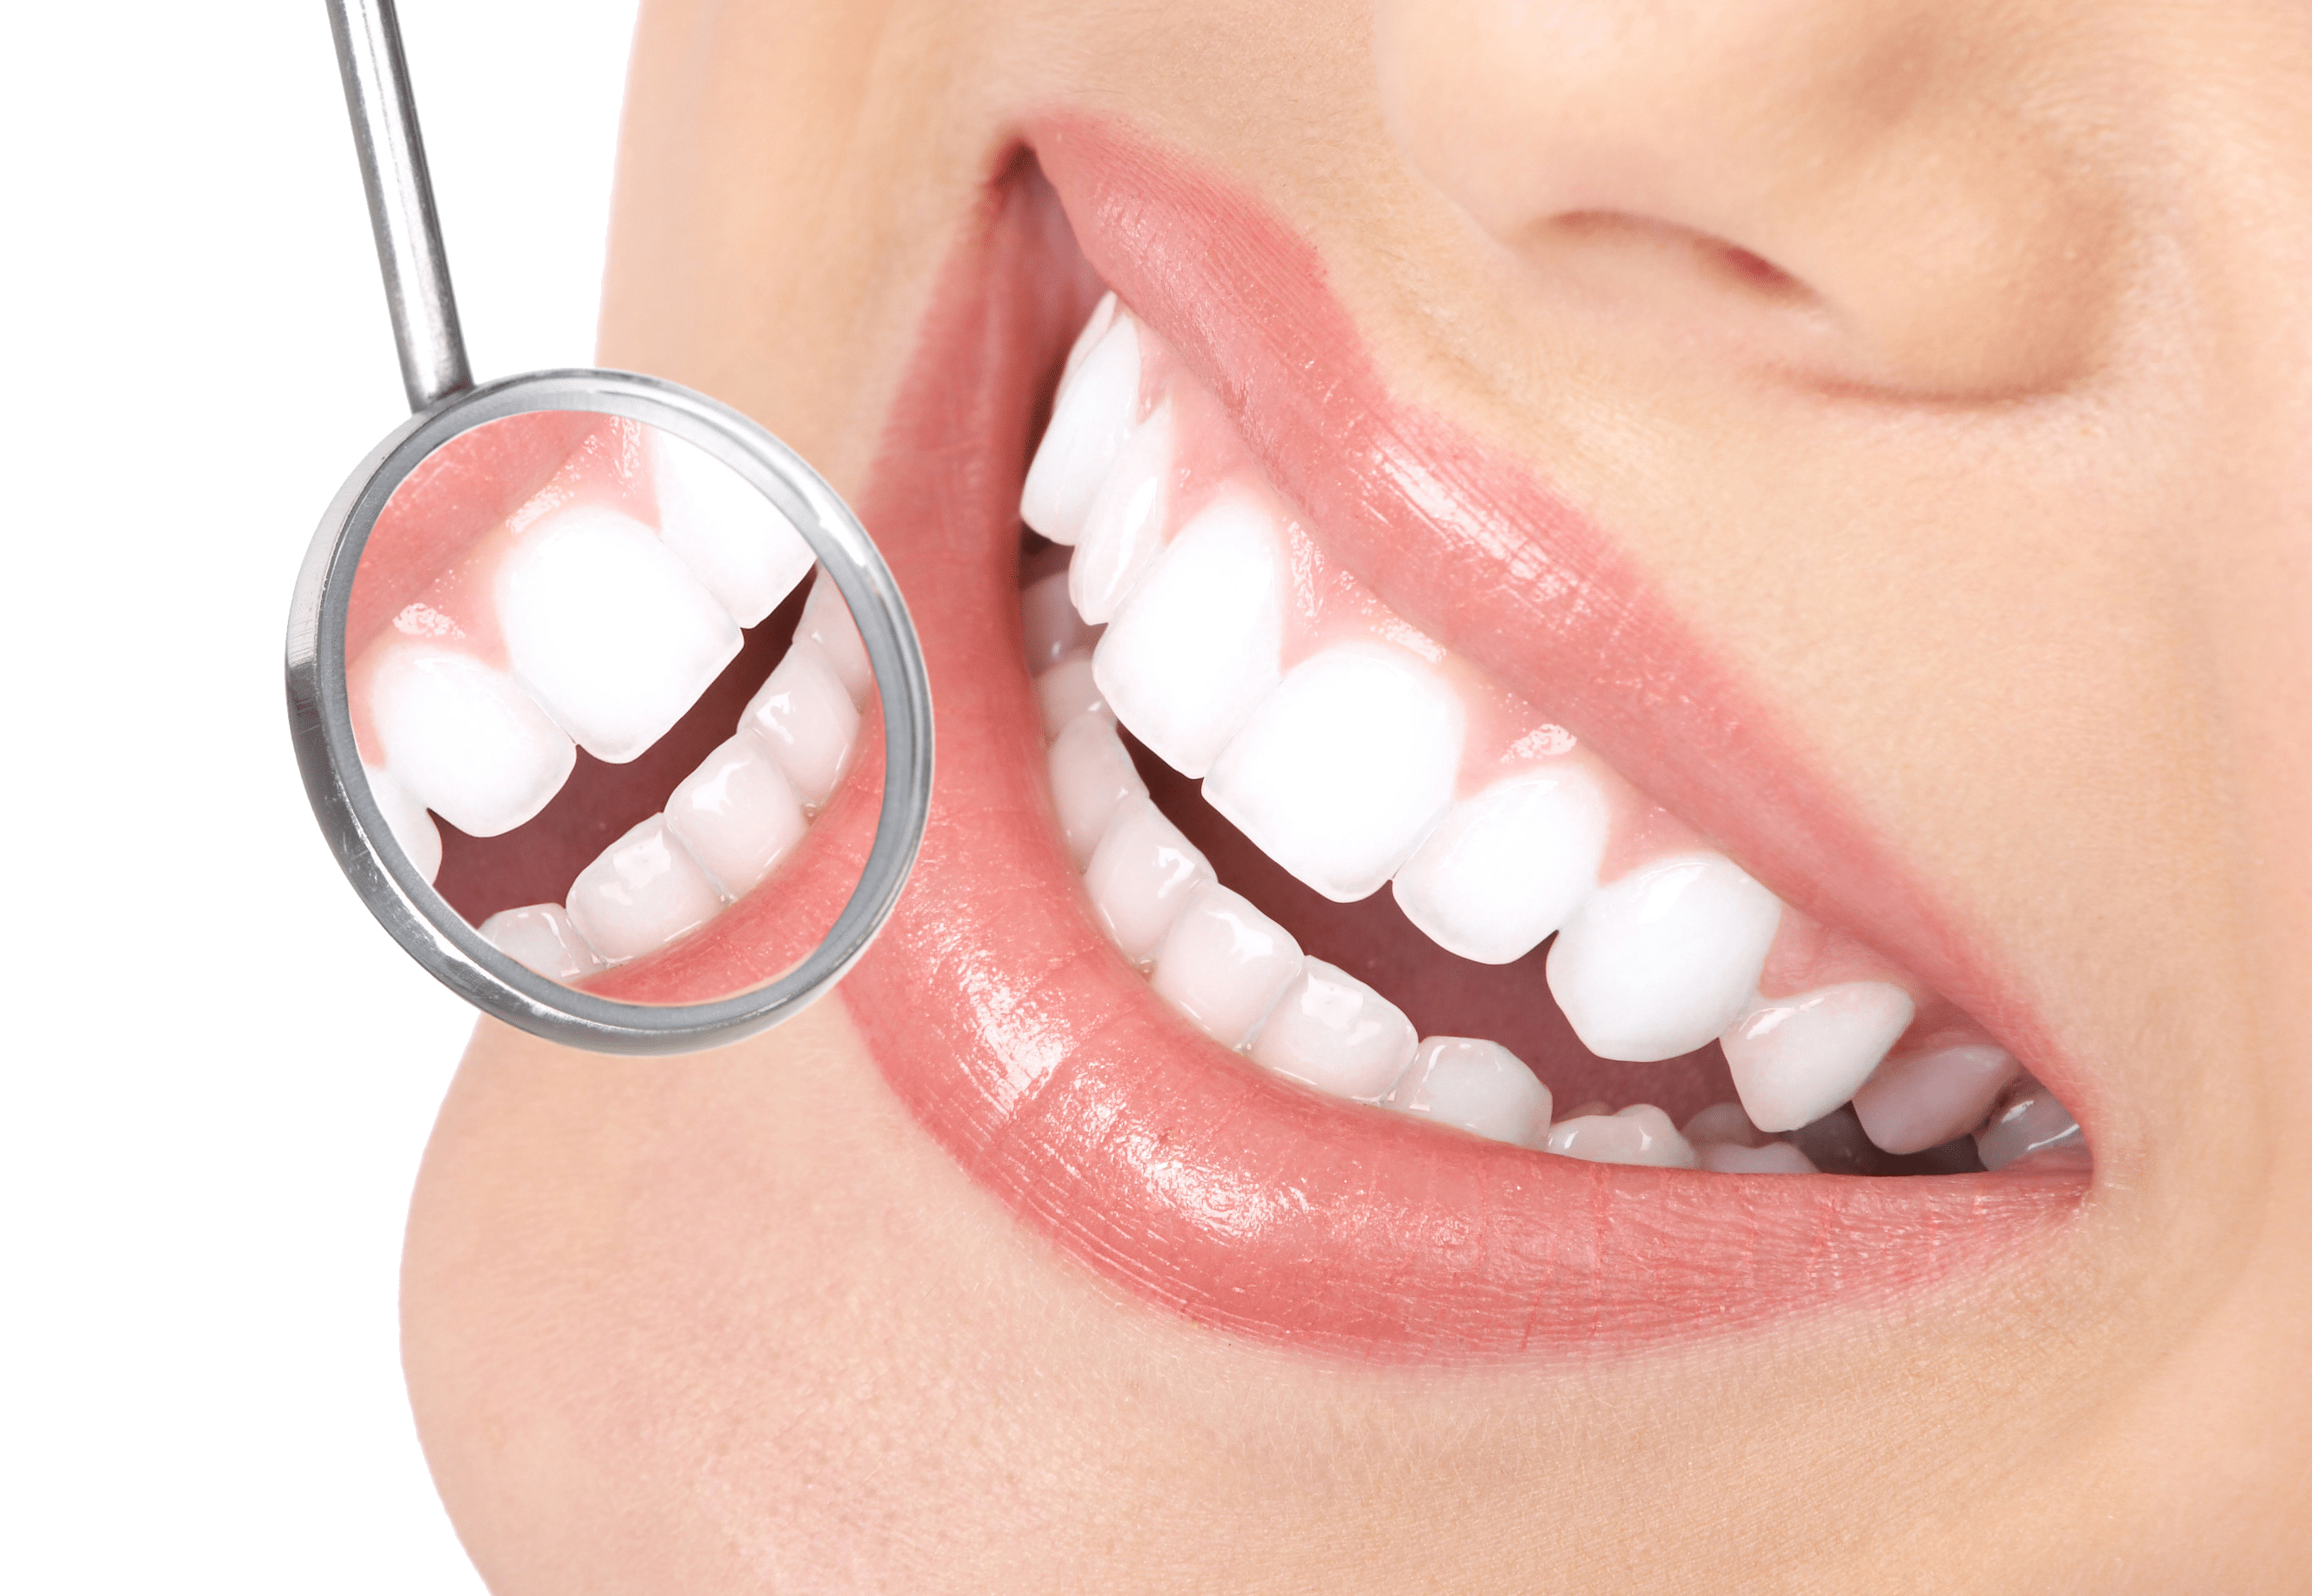 What Are The Benefits Of General Dentistry